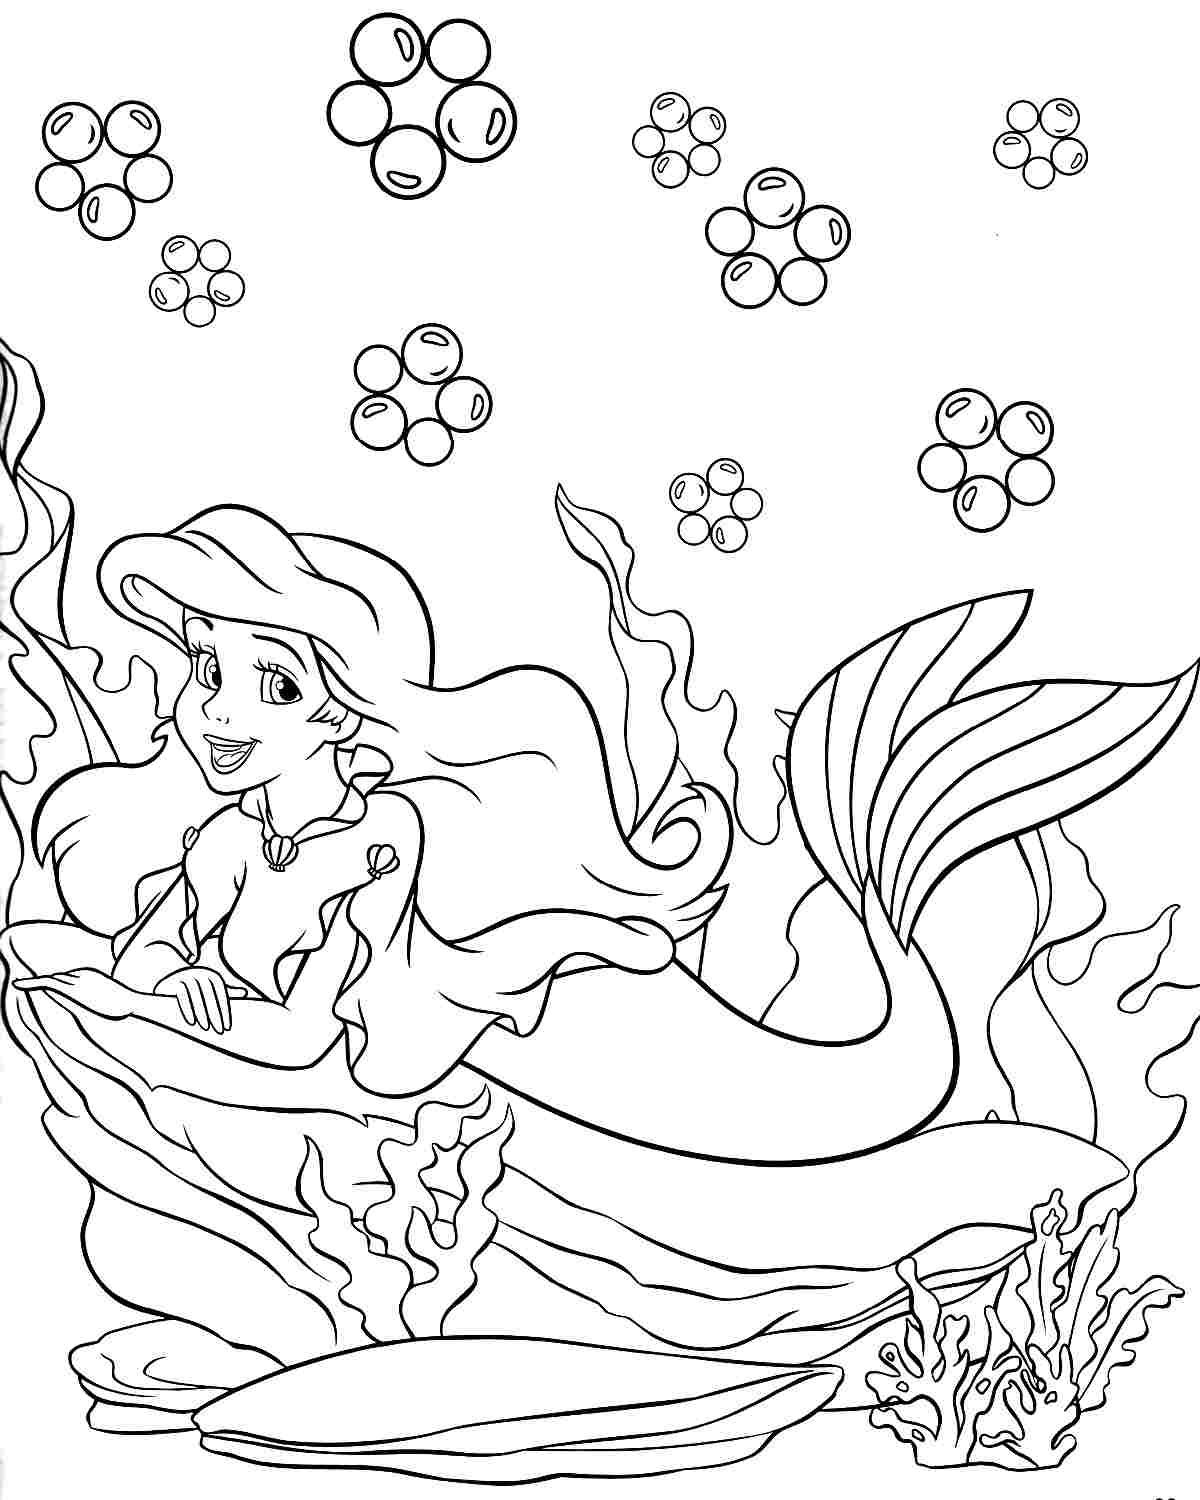 Disney Princess Christmas Coloring Pages Printable With Pin By Yooper Girl On Color Sea Mermaid Pinterest